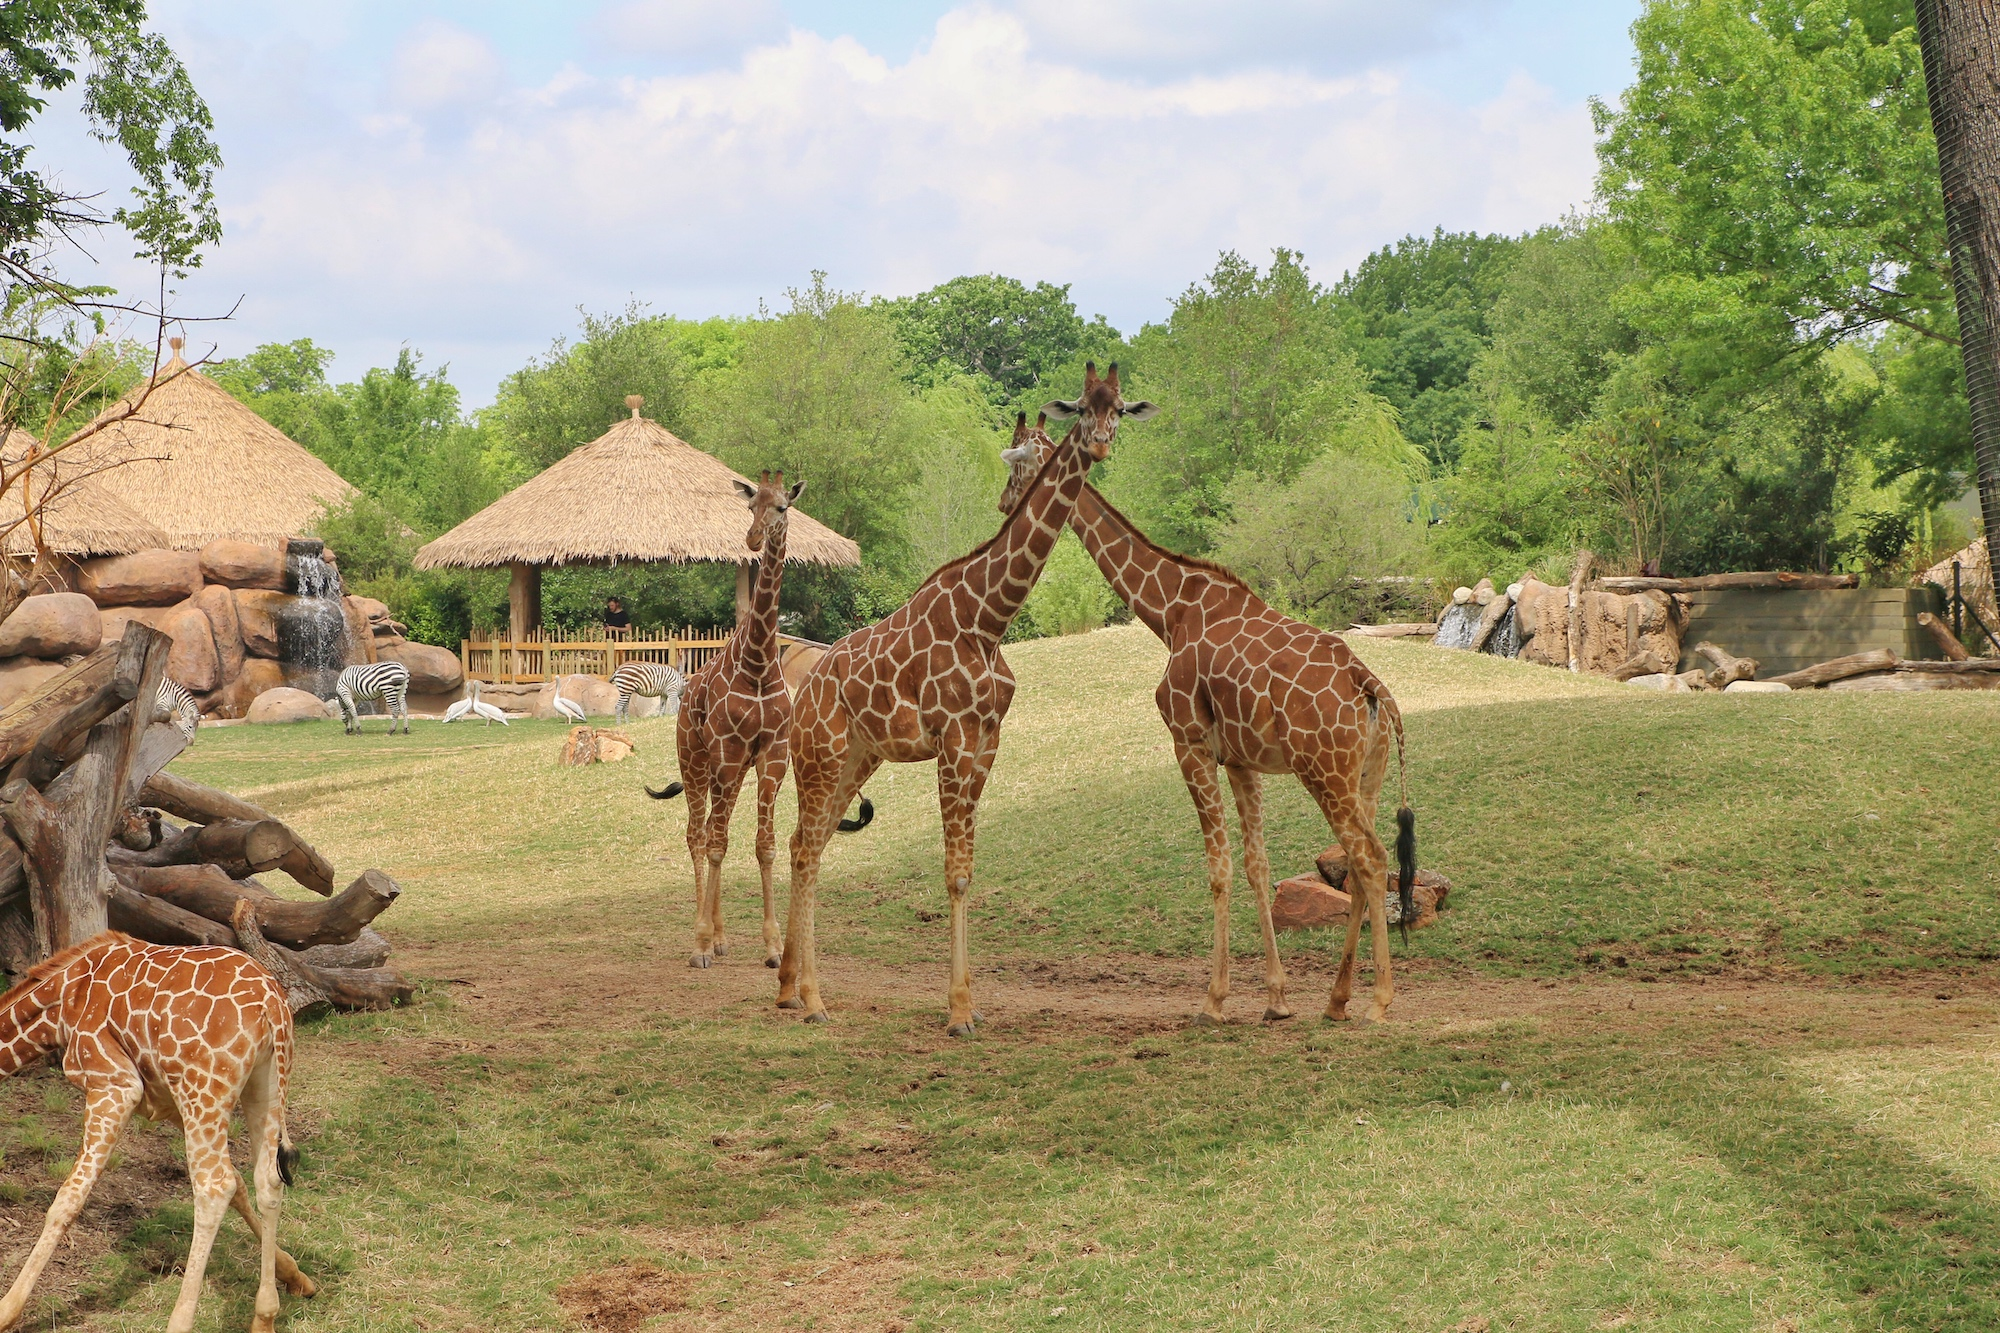 giraffe habitat at Fort Worth zoo